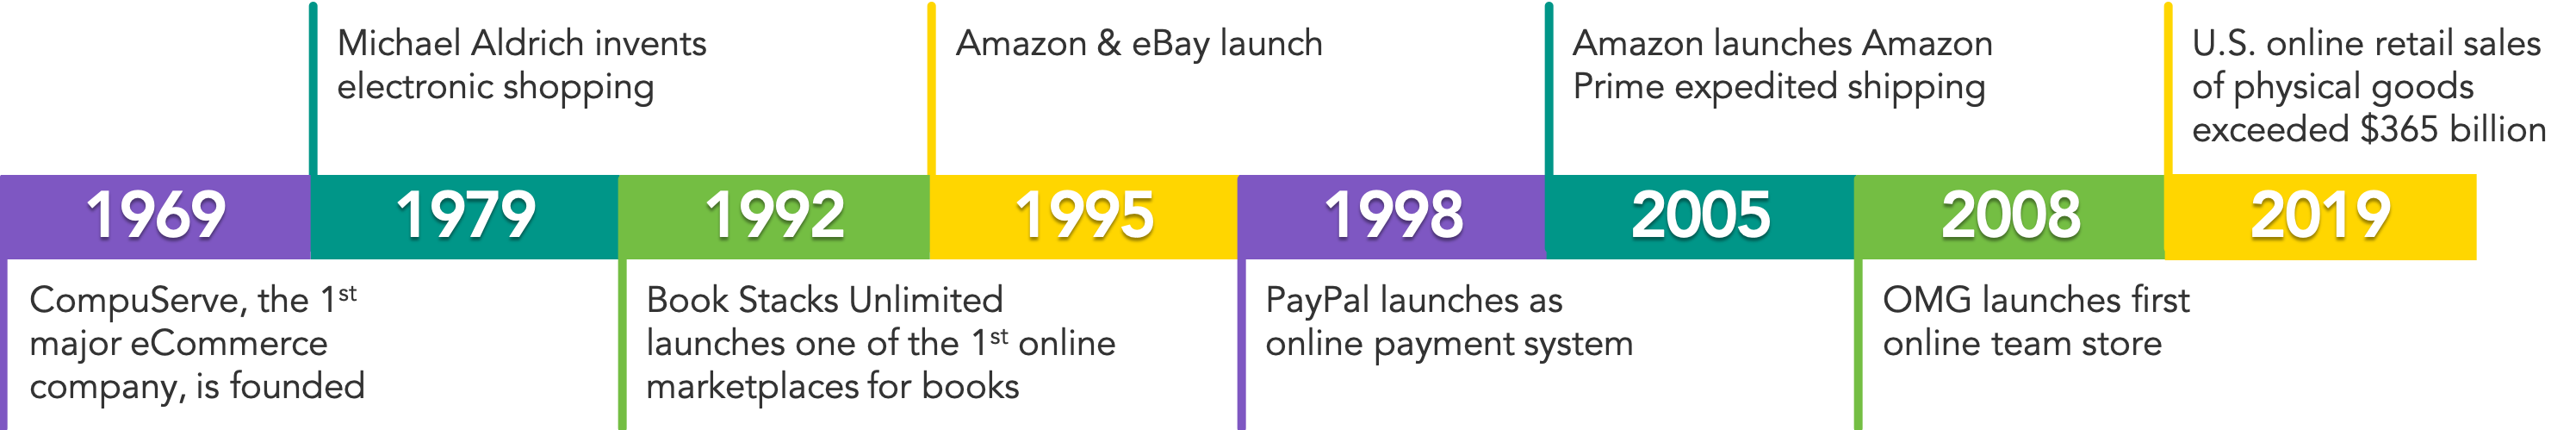 History of eCommerce Timeline - OrderMyGear